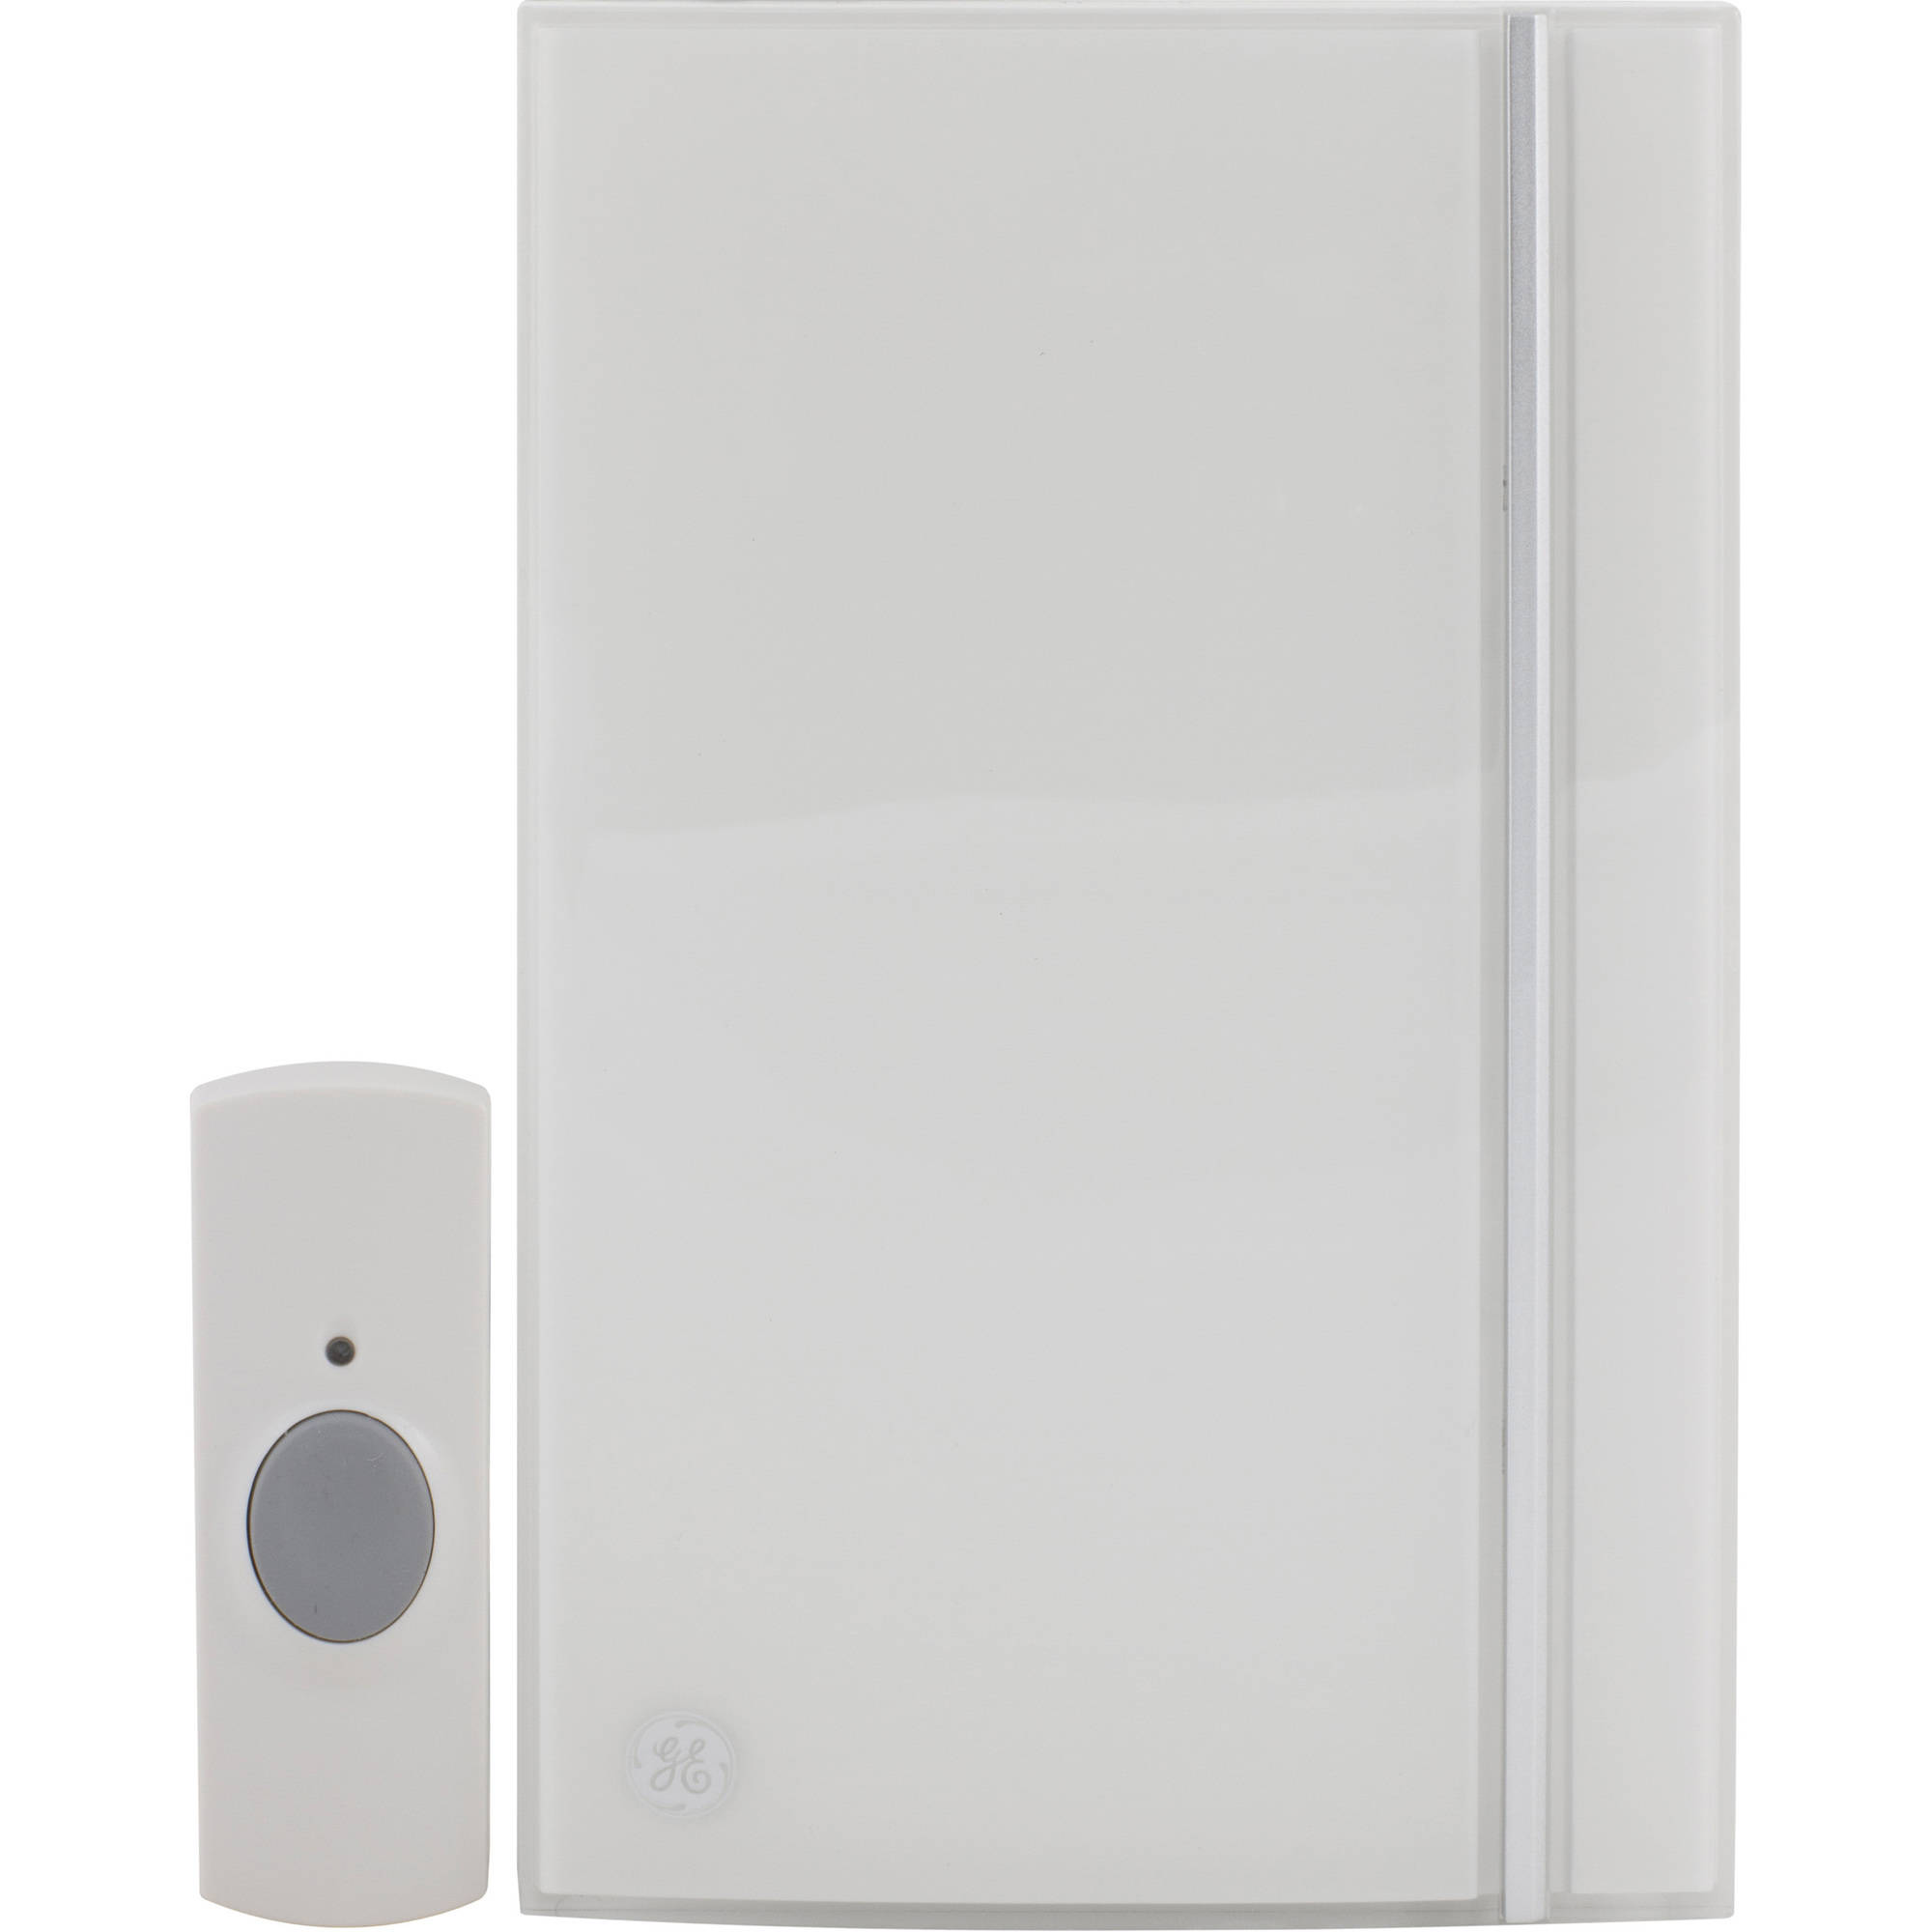 ge battery operated wireless door chime 32 melodies - Doorbell Chime